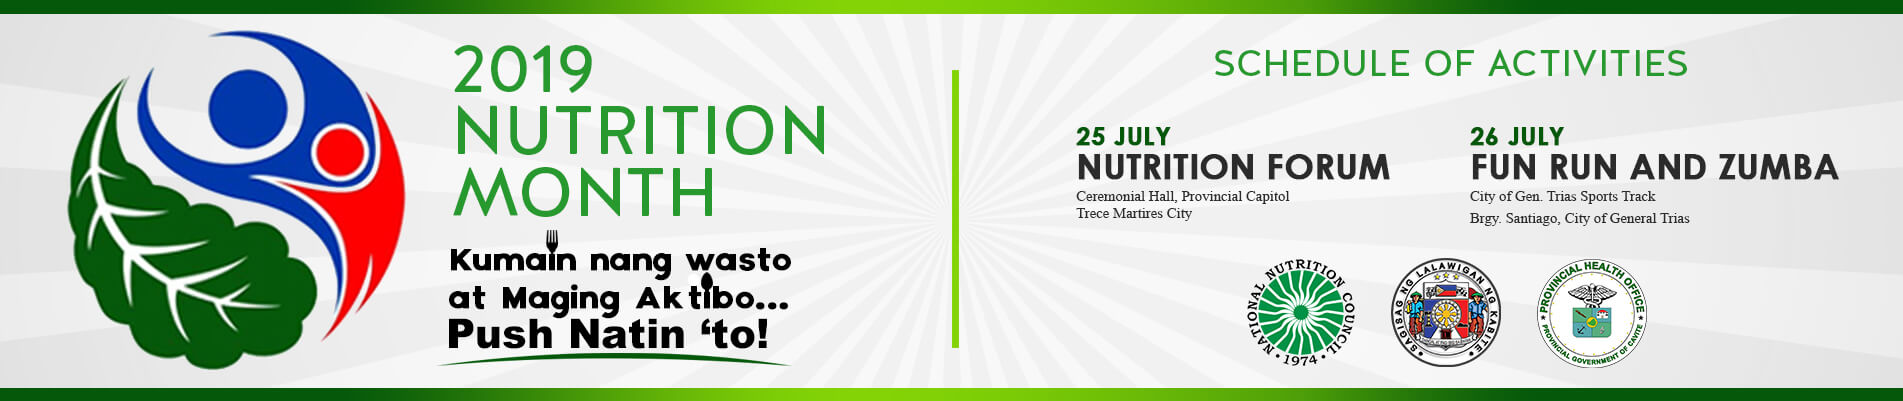 2019 Nutrition Month